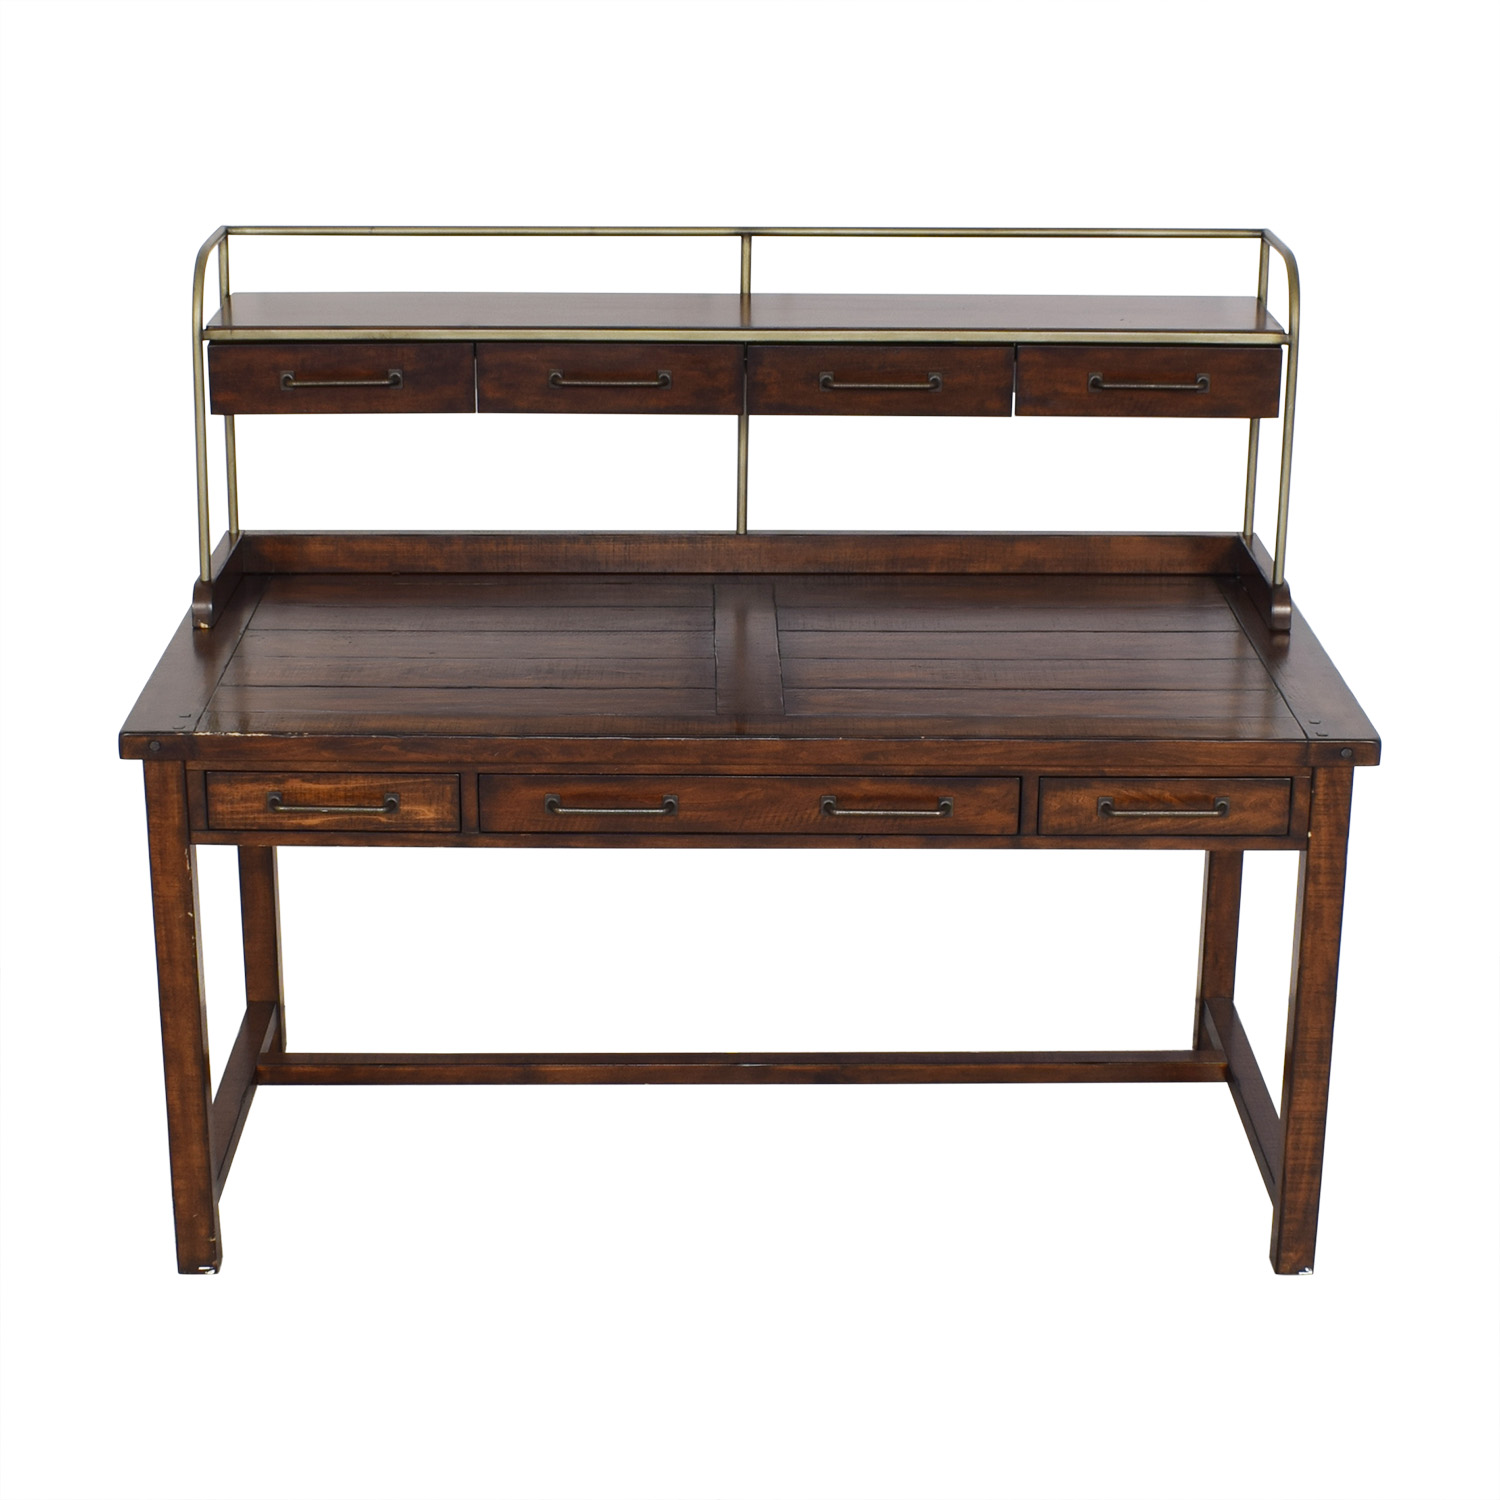 Pottery Barn Benchwright Desk with Hutch / Tables